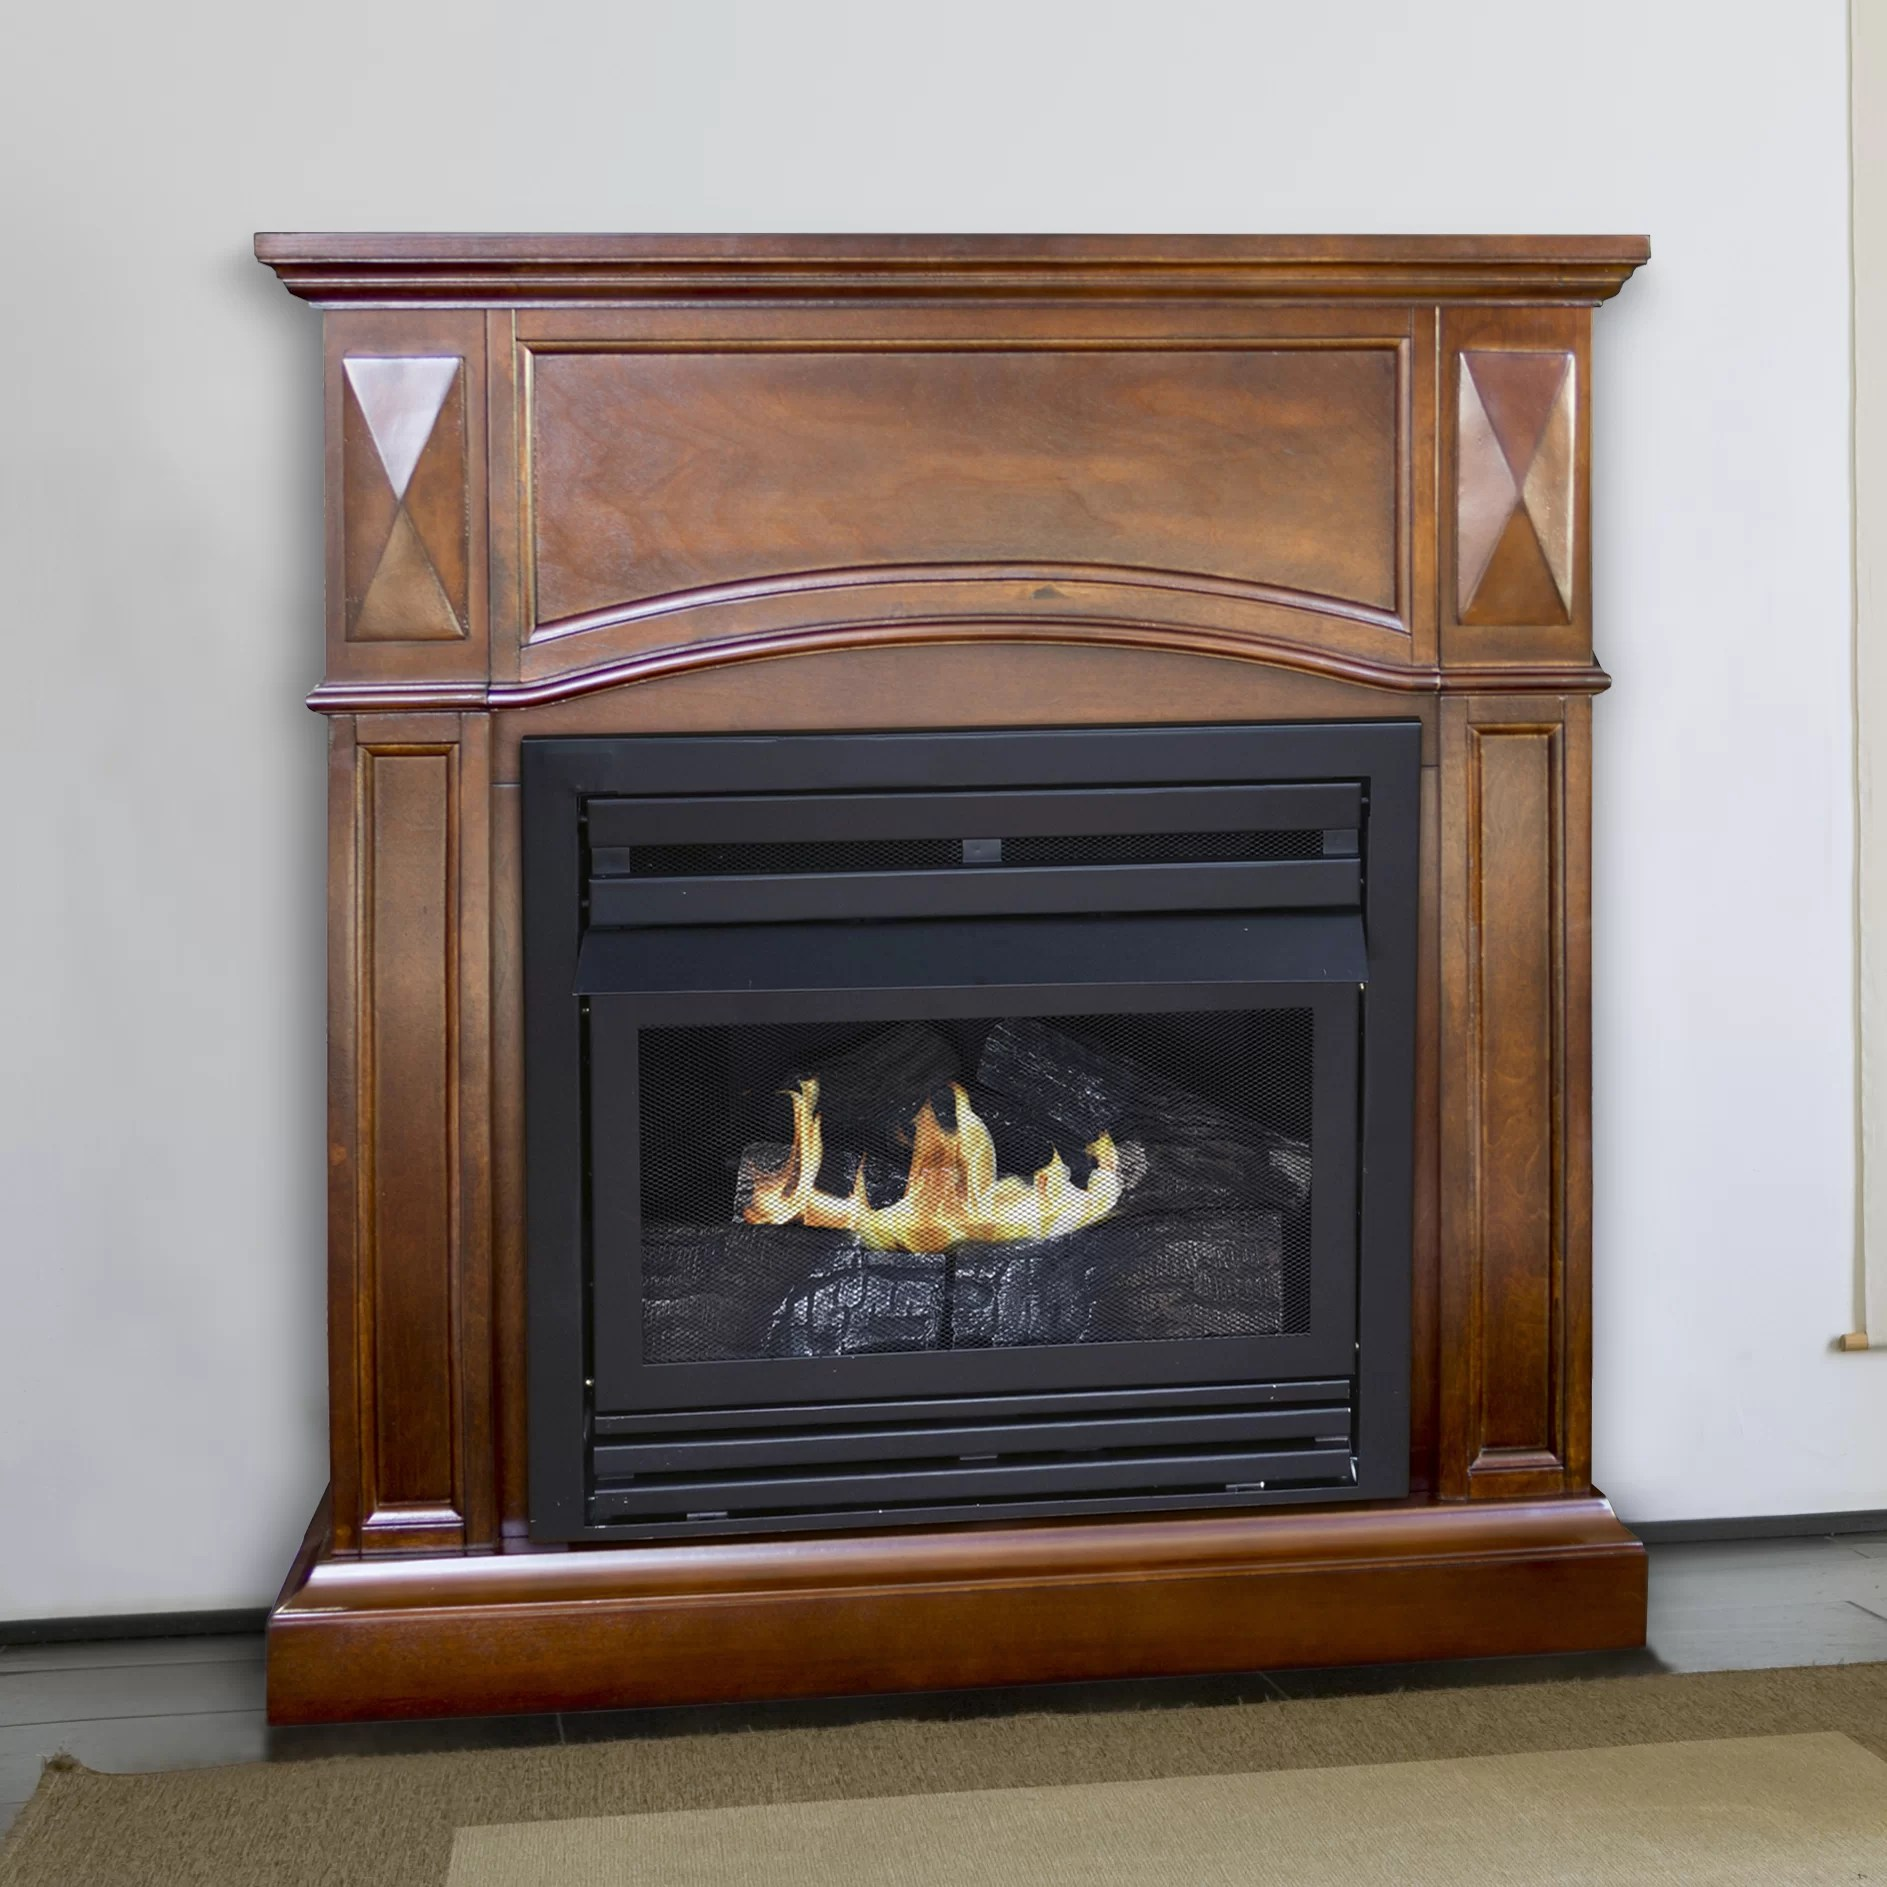 Fireplace Vent Pleasant Hearth Dual Fuel Vent Free Wall Mount Natural Gas